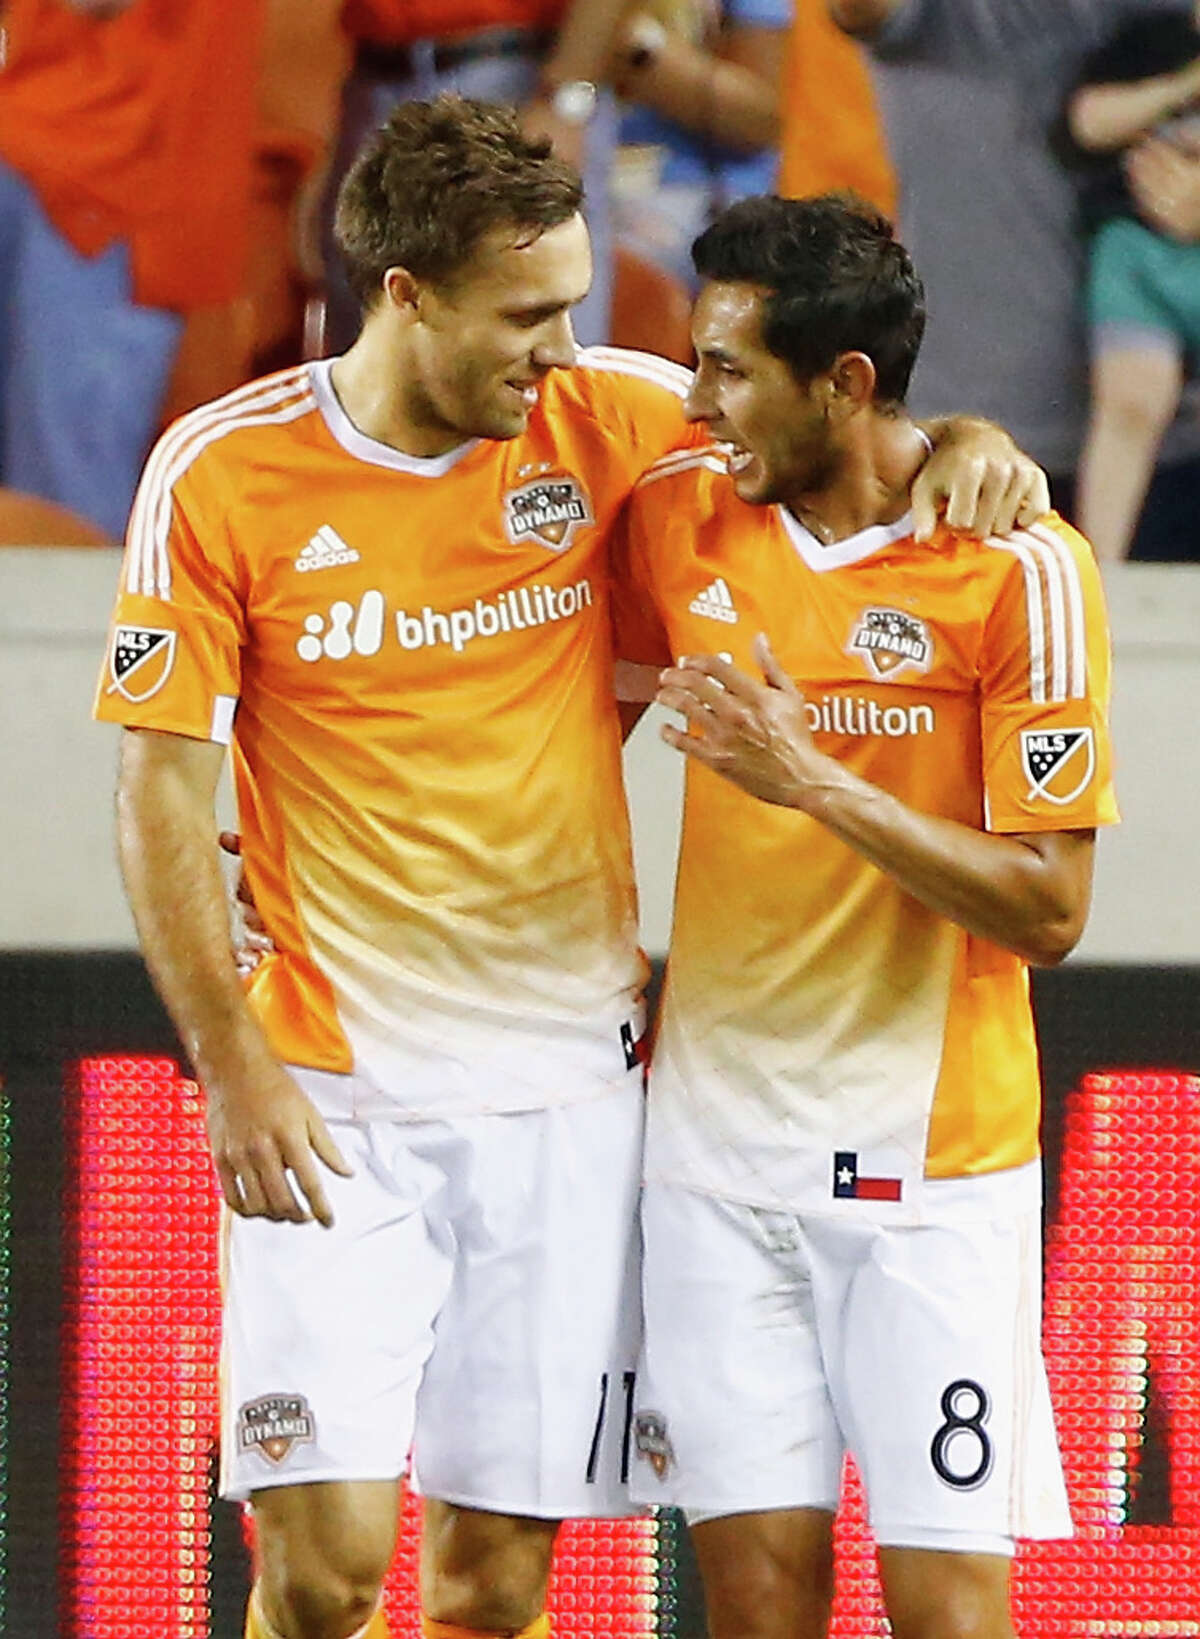 HOUSTON, TX - MARCH 12: Andrew Wenger #11 and Cristian Maidana #8 of Houston Dynamo celebrate after Wenger scored the fourth goal of the first half against FC Dallas during their game at BBVA Compass Stadium on March 12, 2016 in Houston, Texas.